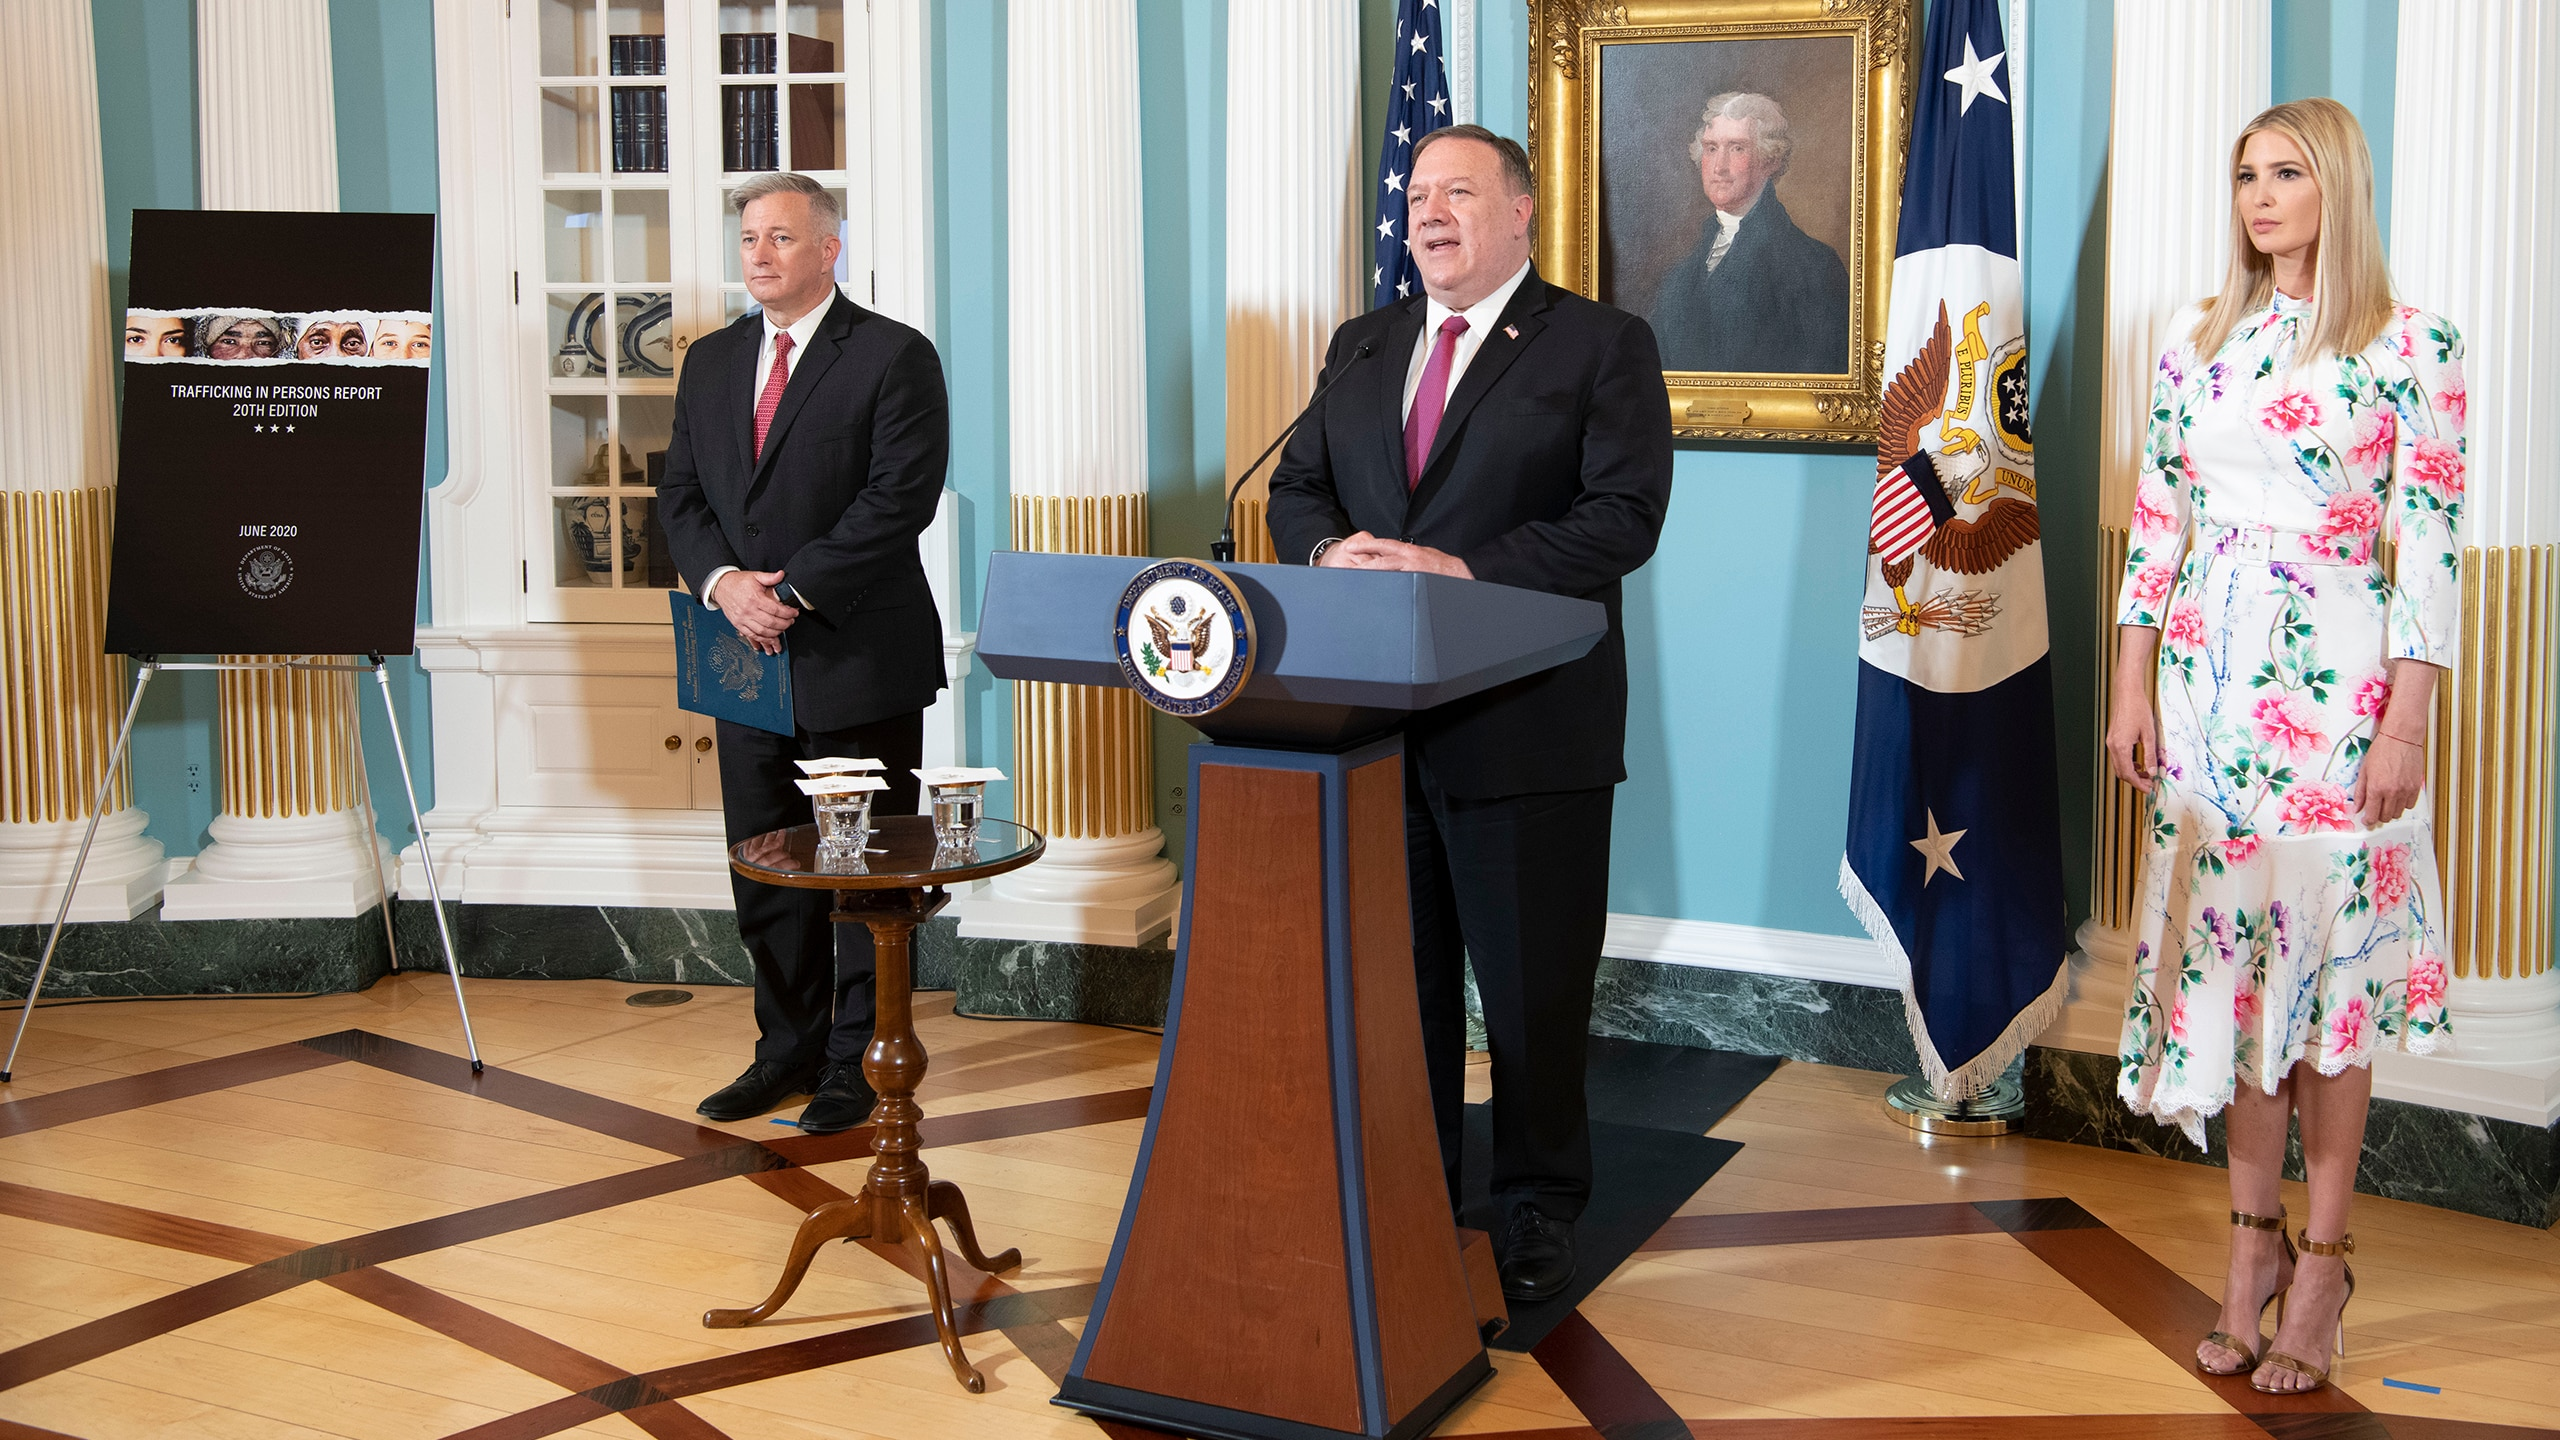 Secretary of State Michael R. Pompeo delivers remarks on the virtual release of the 2020 Trafficking in Persons Report